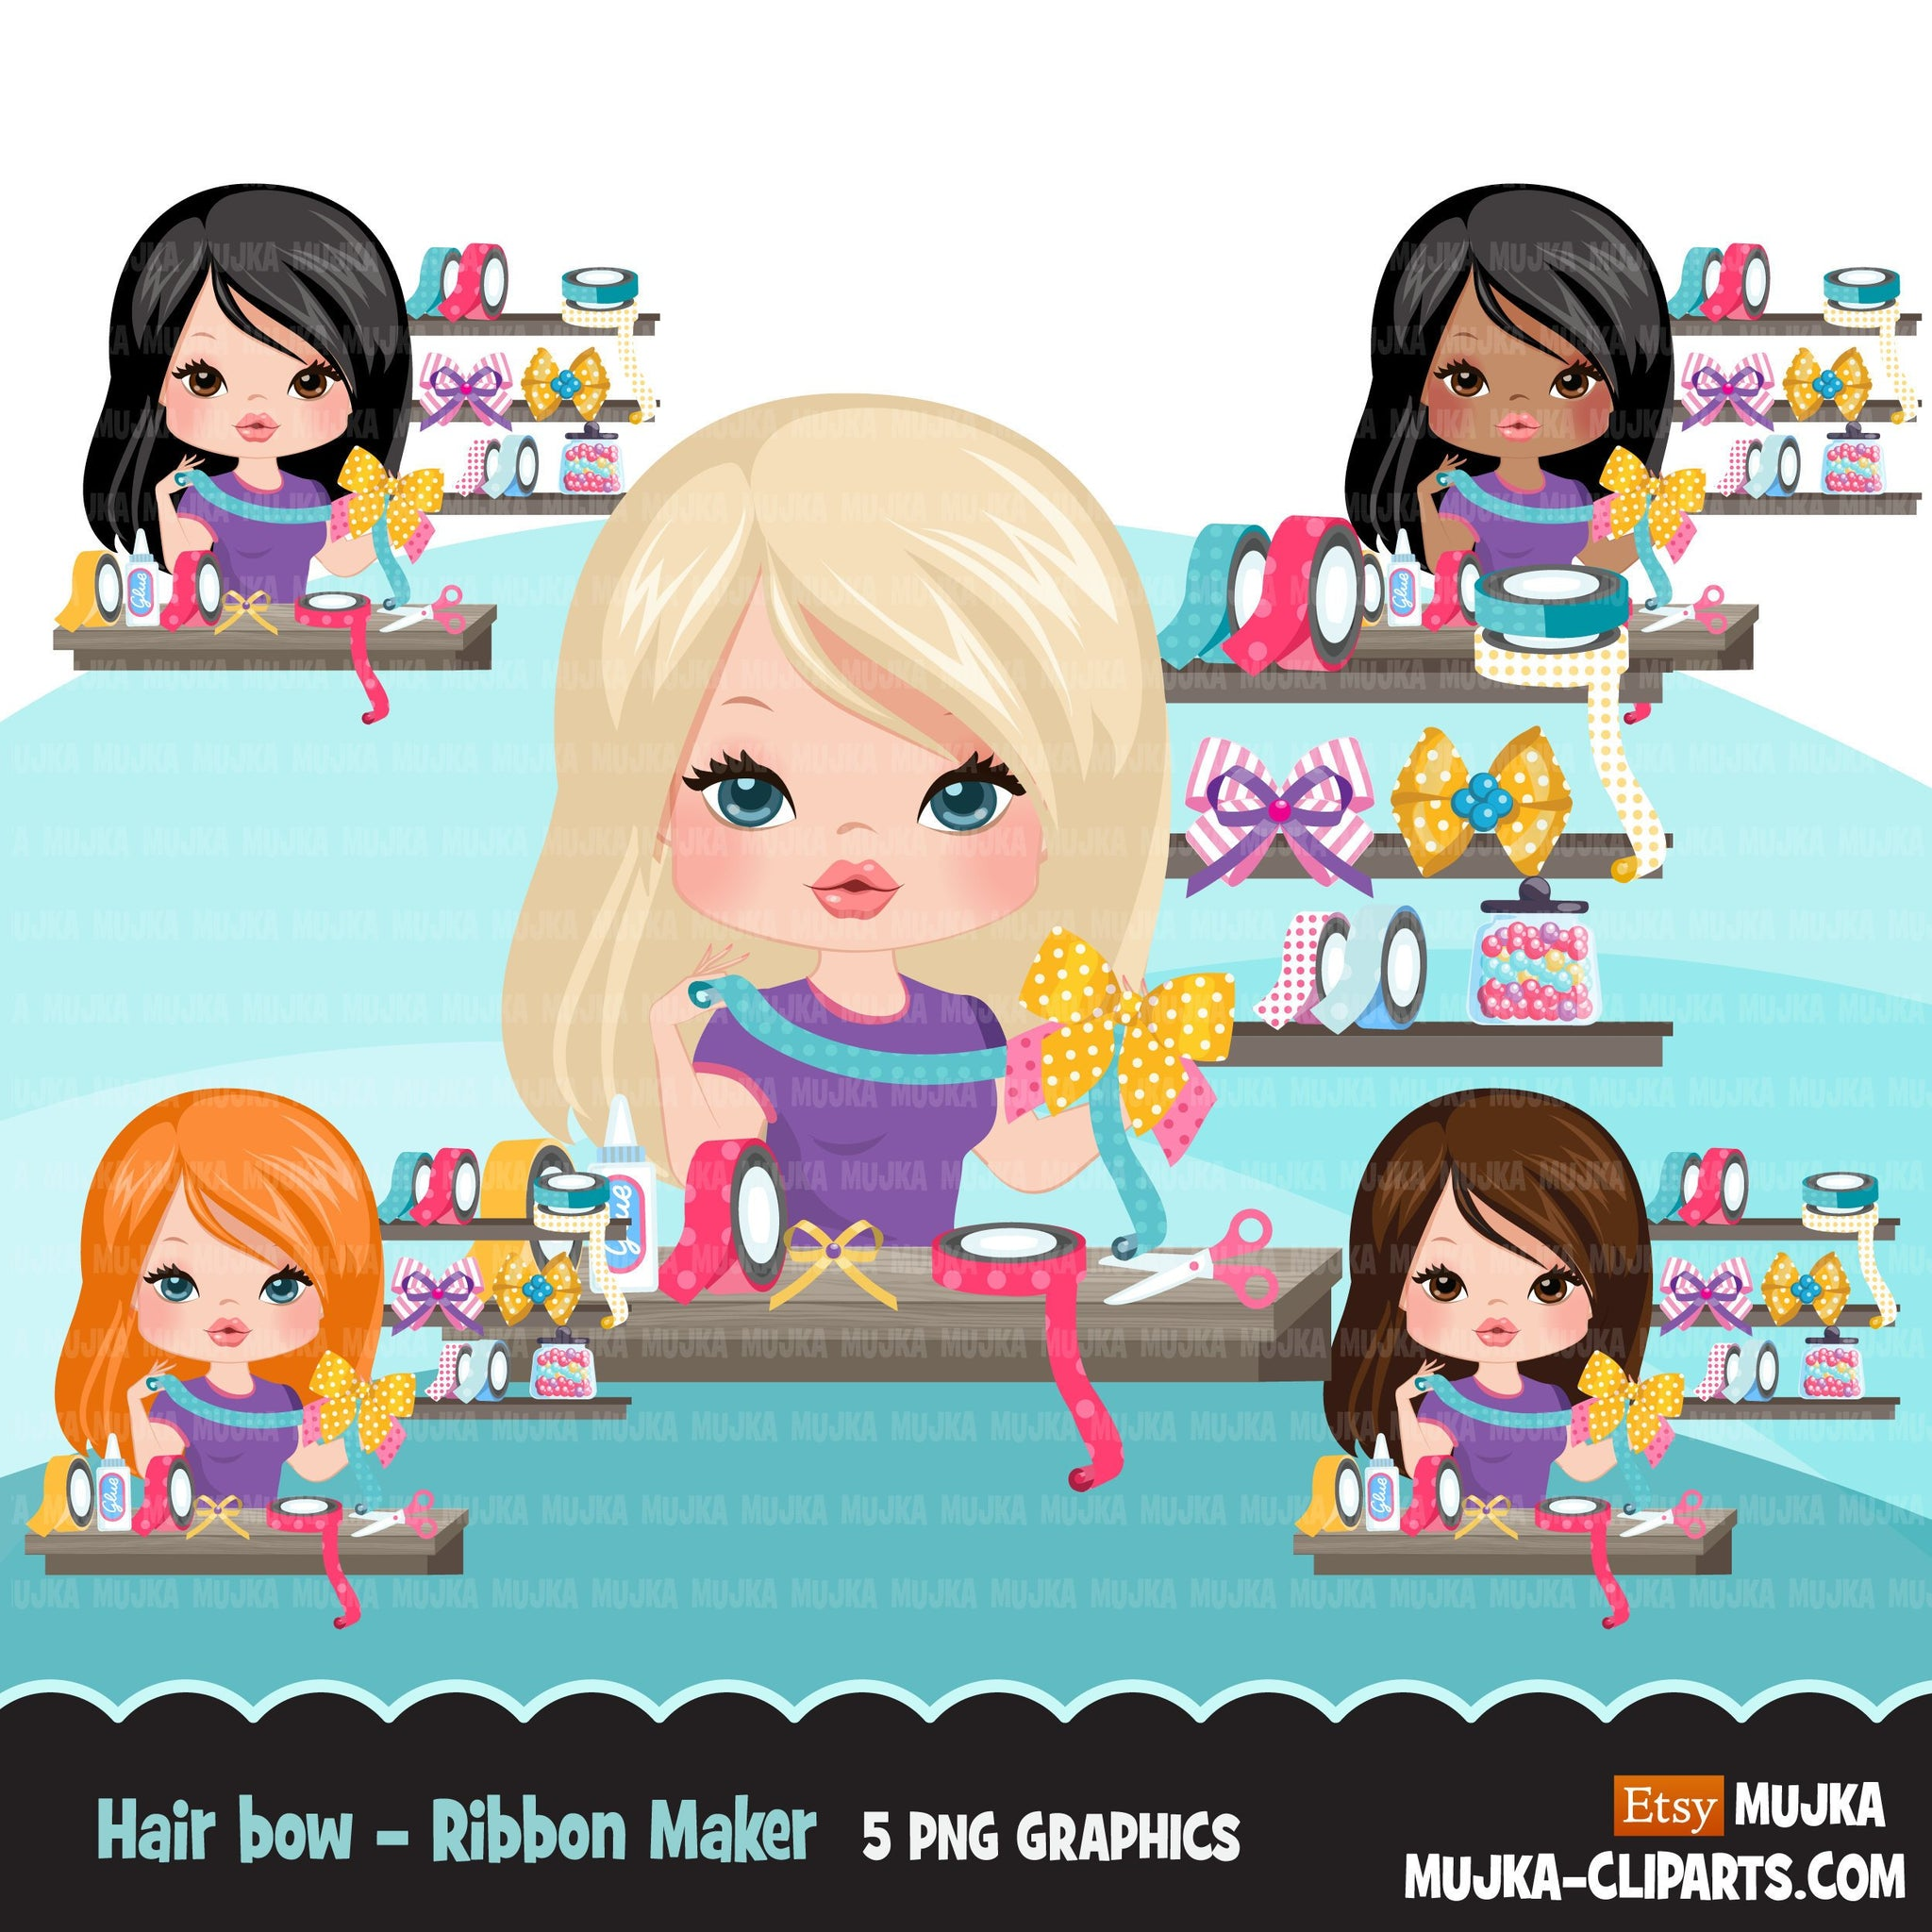 Woman hair bow maker avatar clipart with ribbons, print and cut, bow maker boss girl clip art